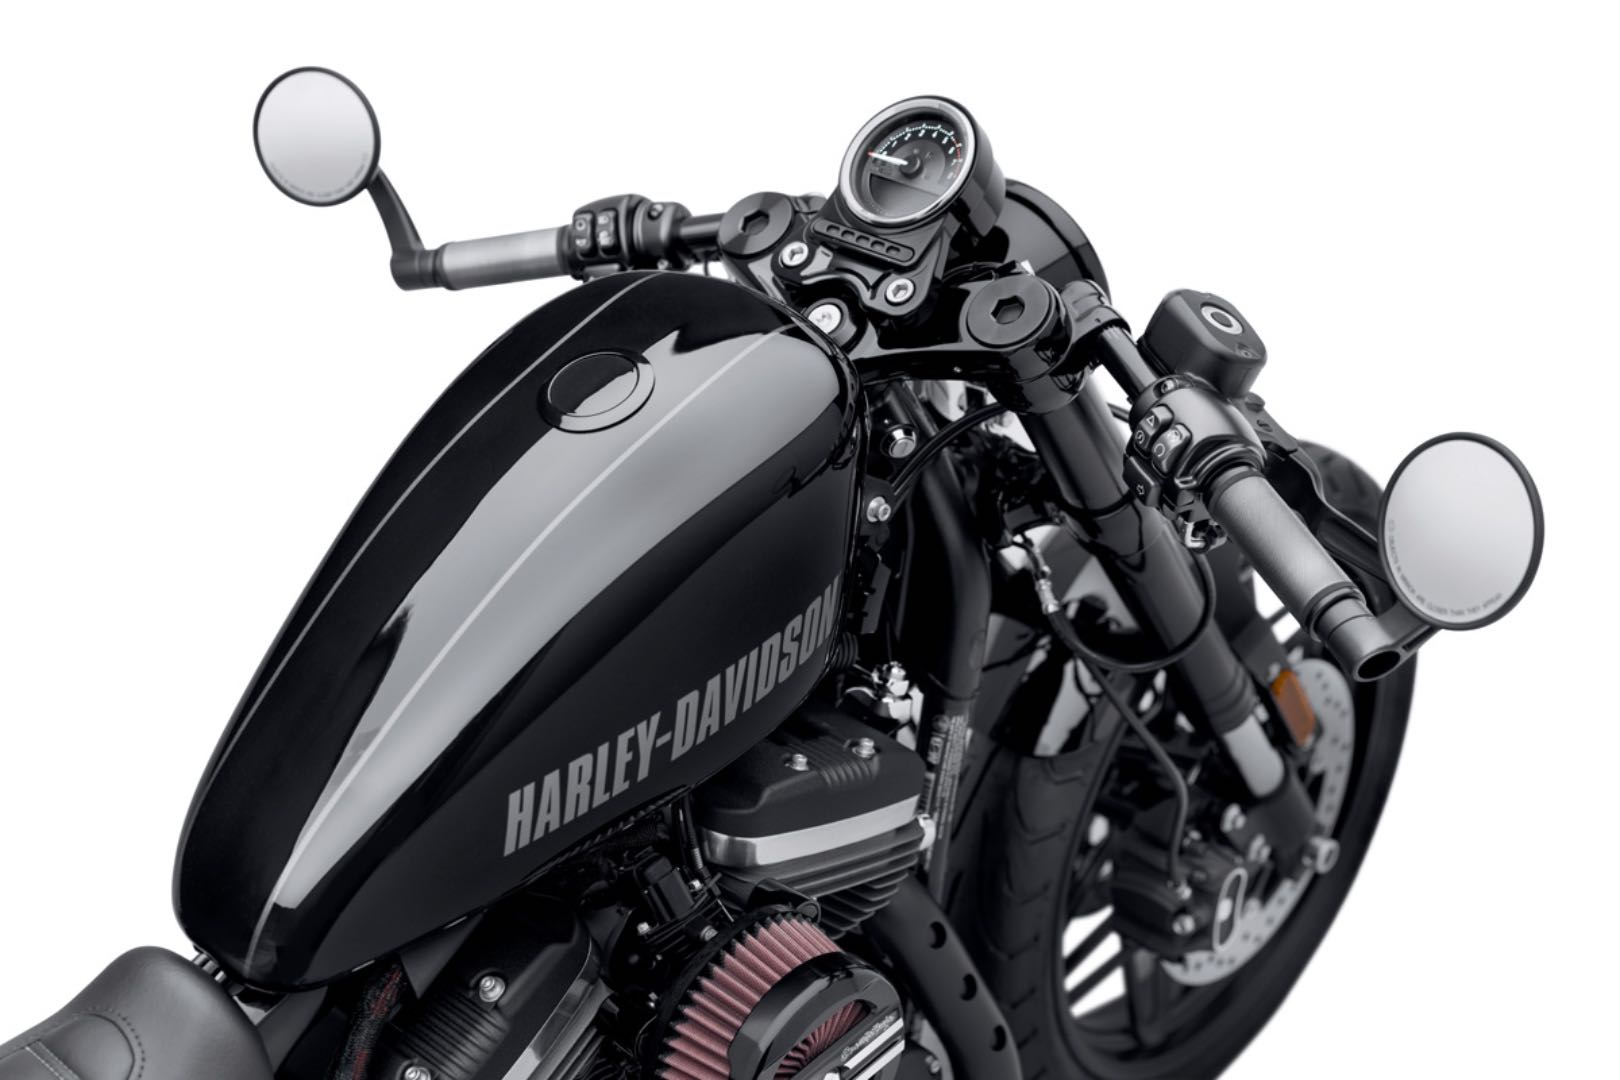 Harley Davidson Custom Sportster Parts And Accessories For: Harley-Davidson Sportster Café Custom Accessories Released